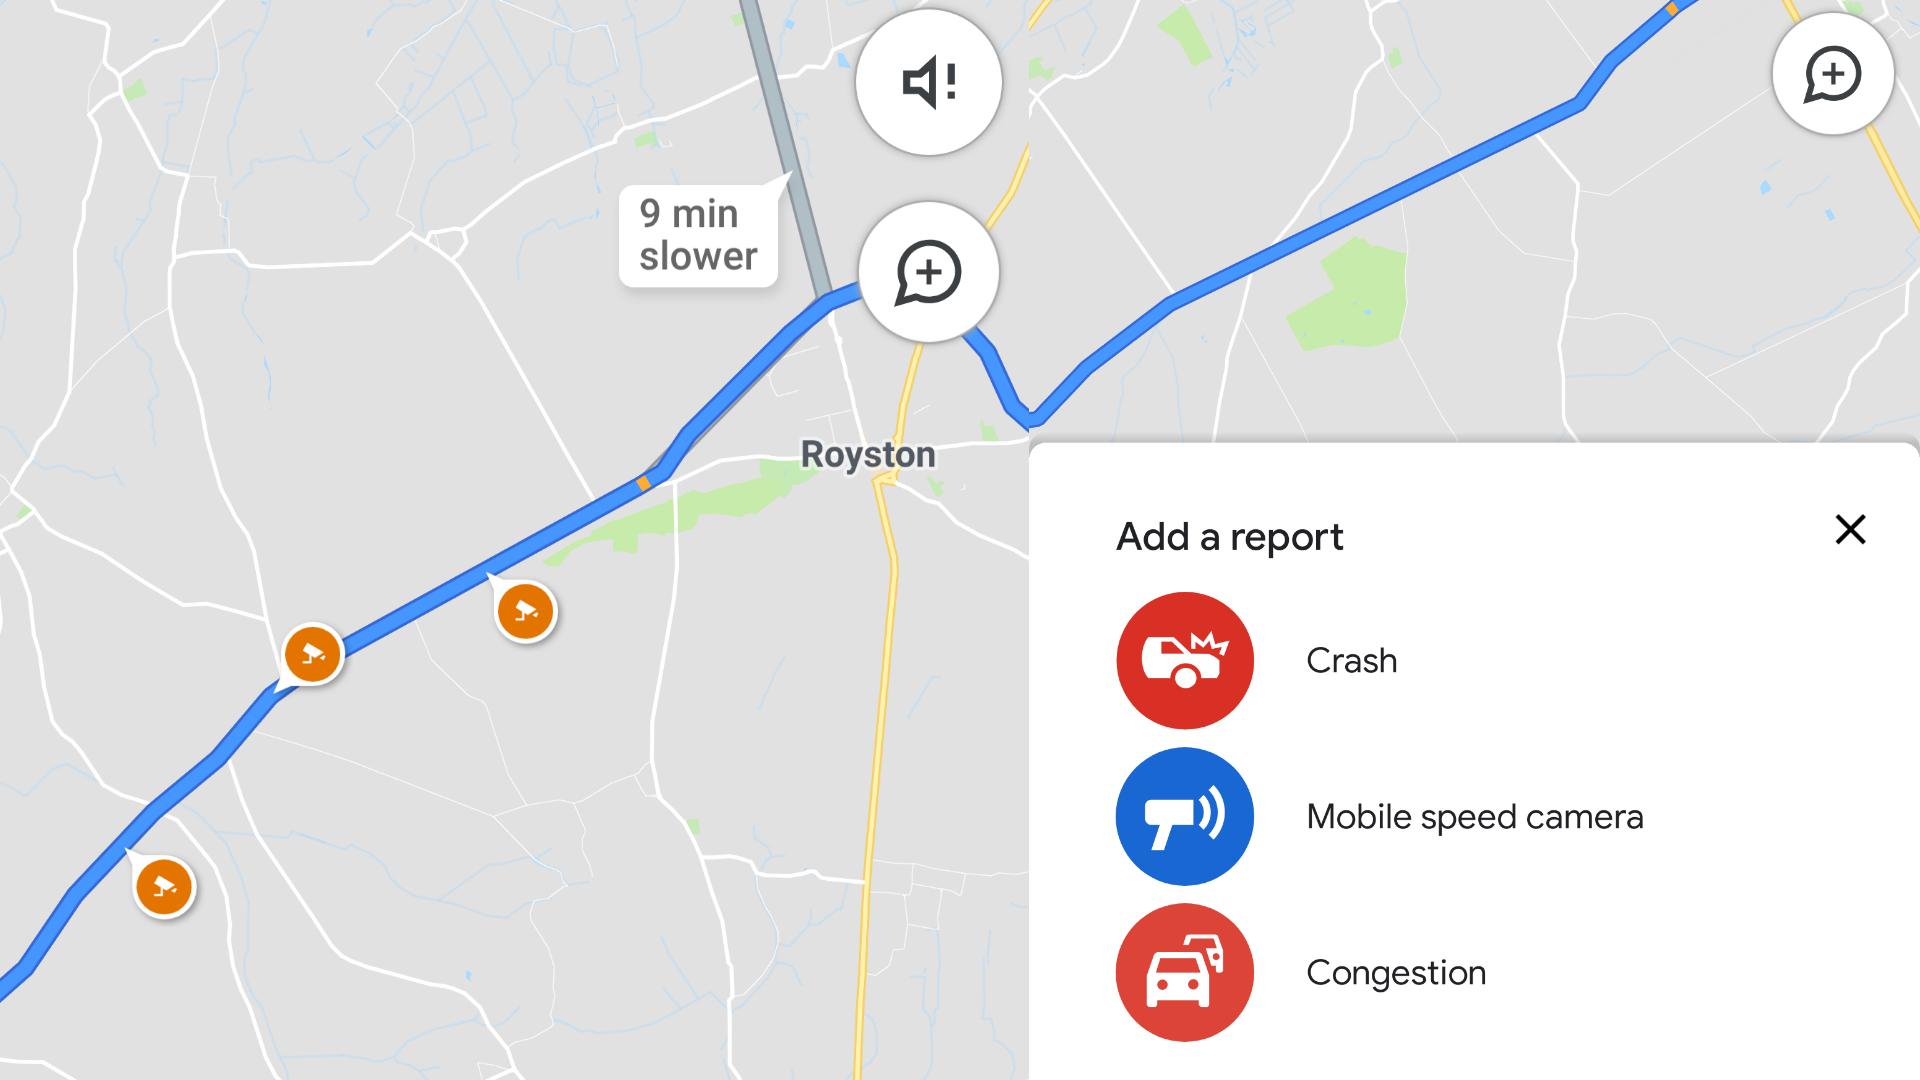 Speed cameras on Google Maps